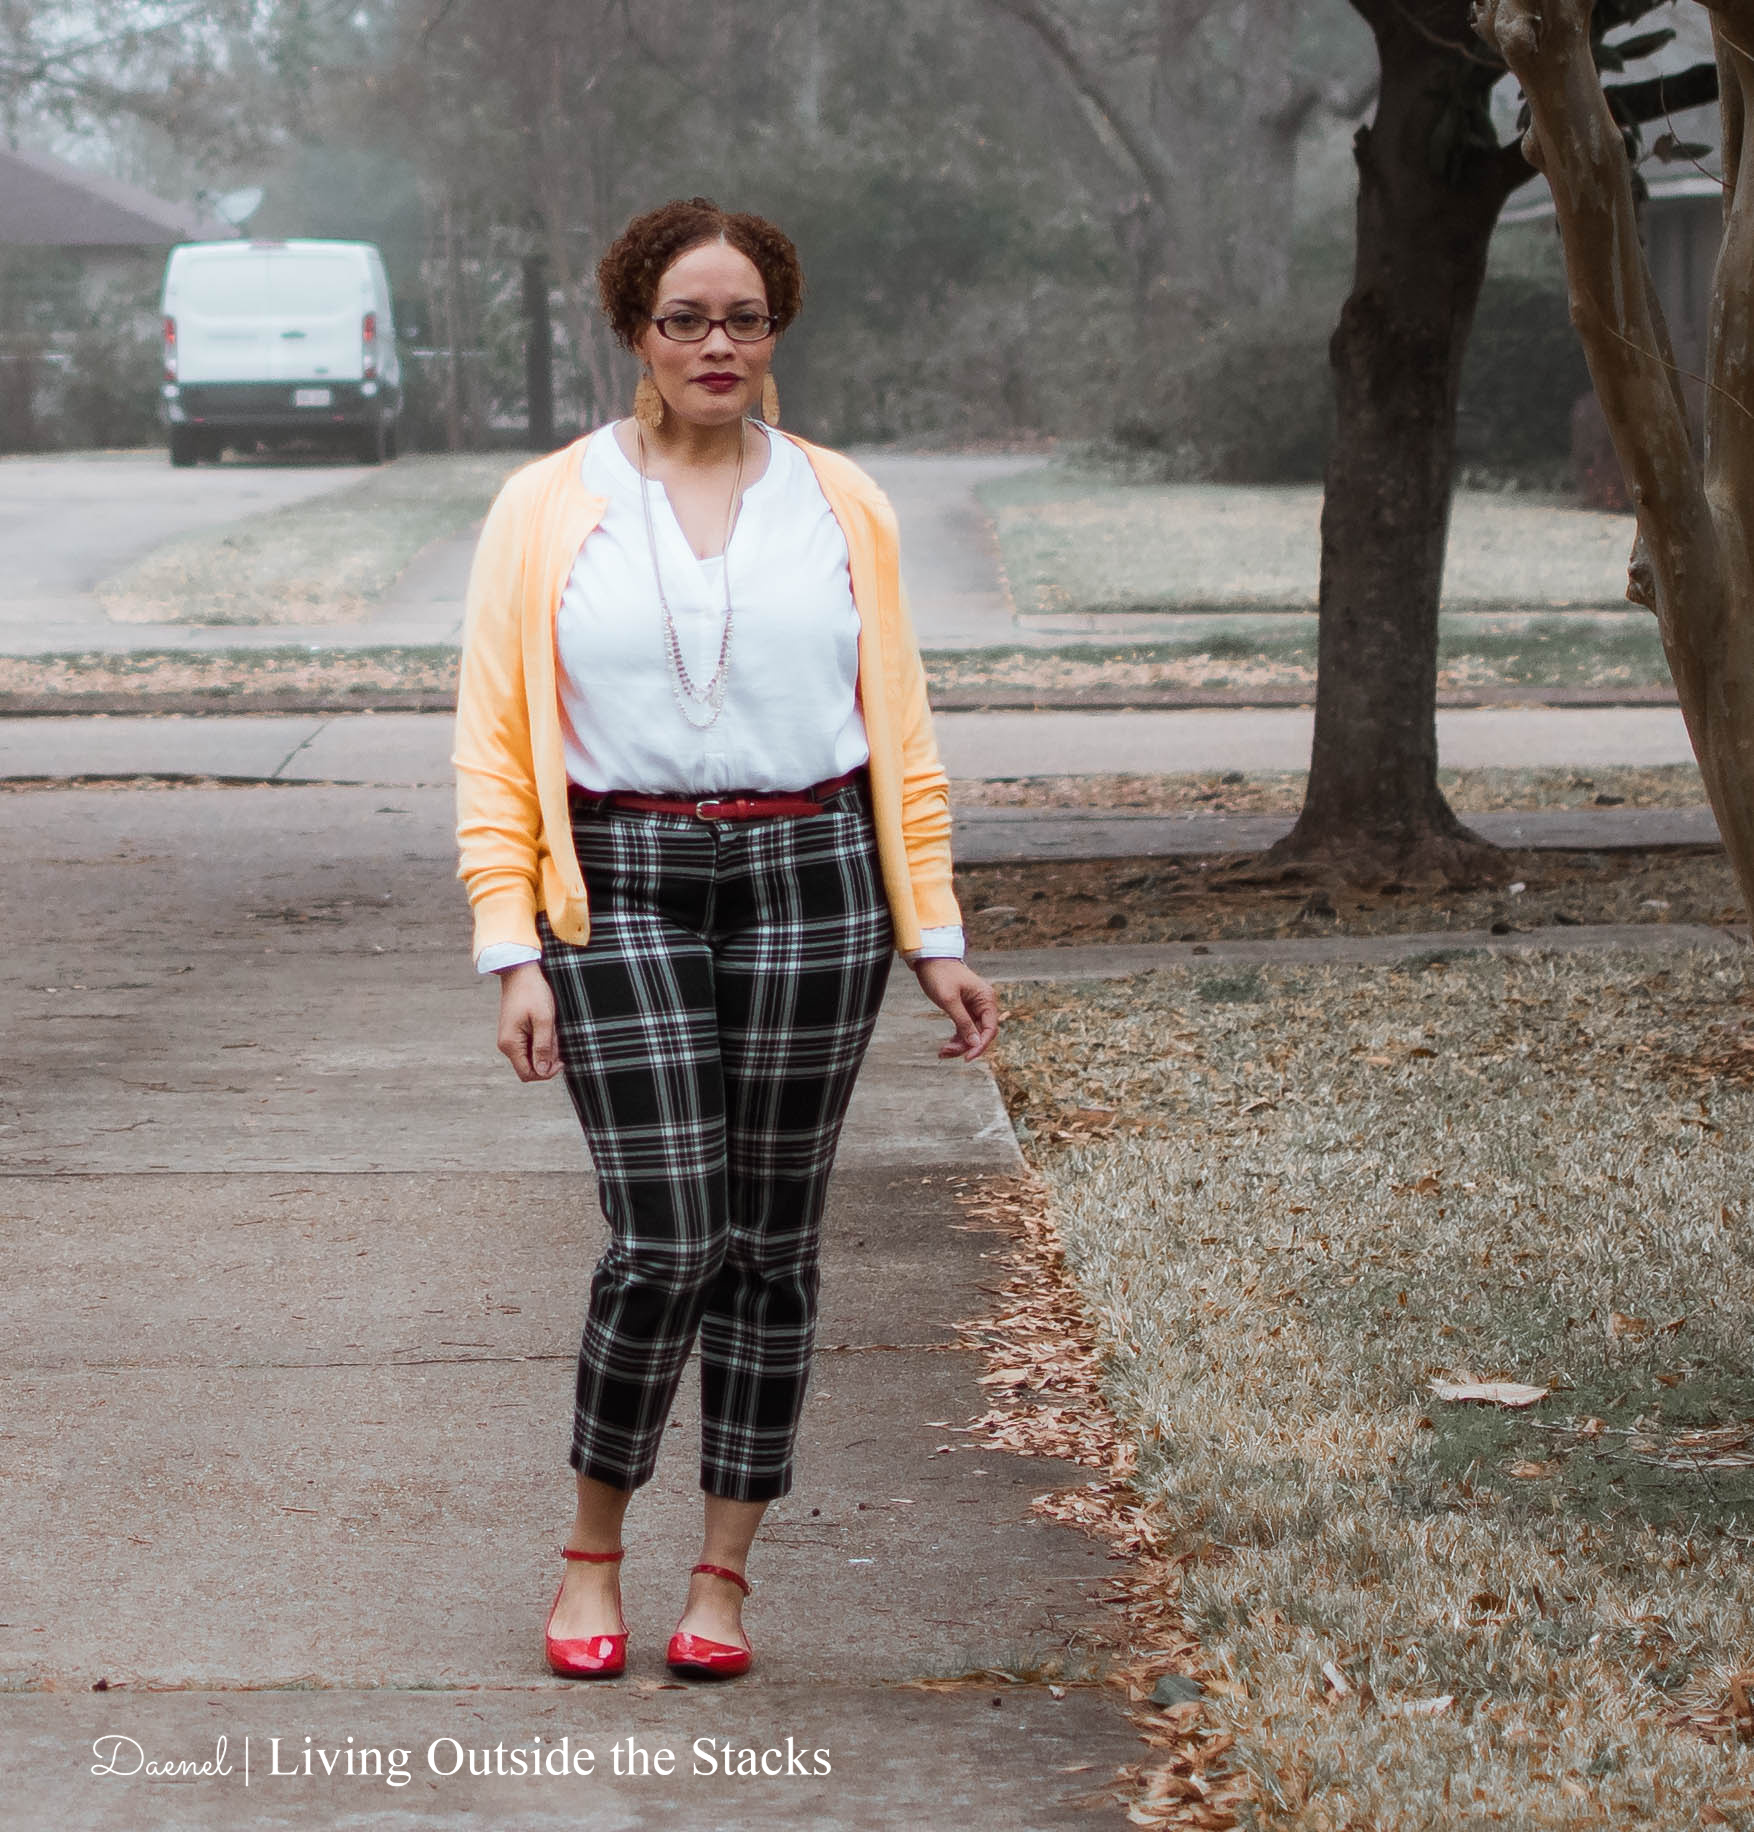 Daenel T {living outside the stacks} yellow cardi white top plaid pants and red flats